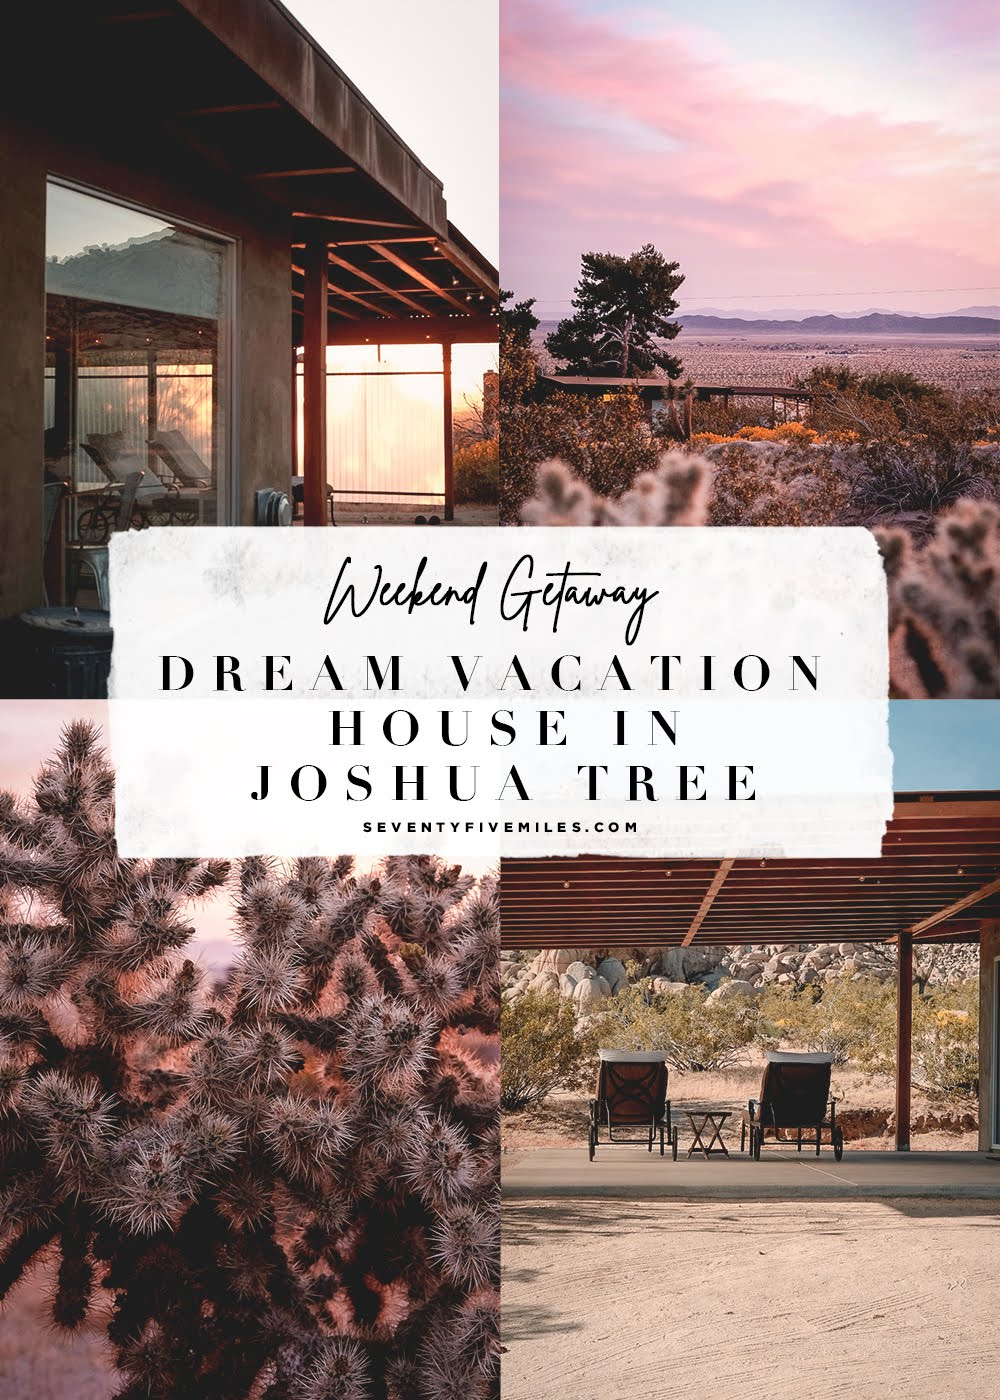 DREAM VACATION HOUSE IN JOSHUA TREE